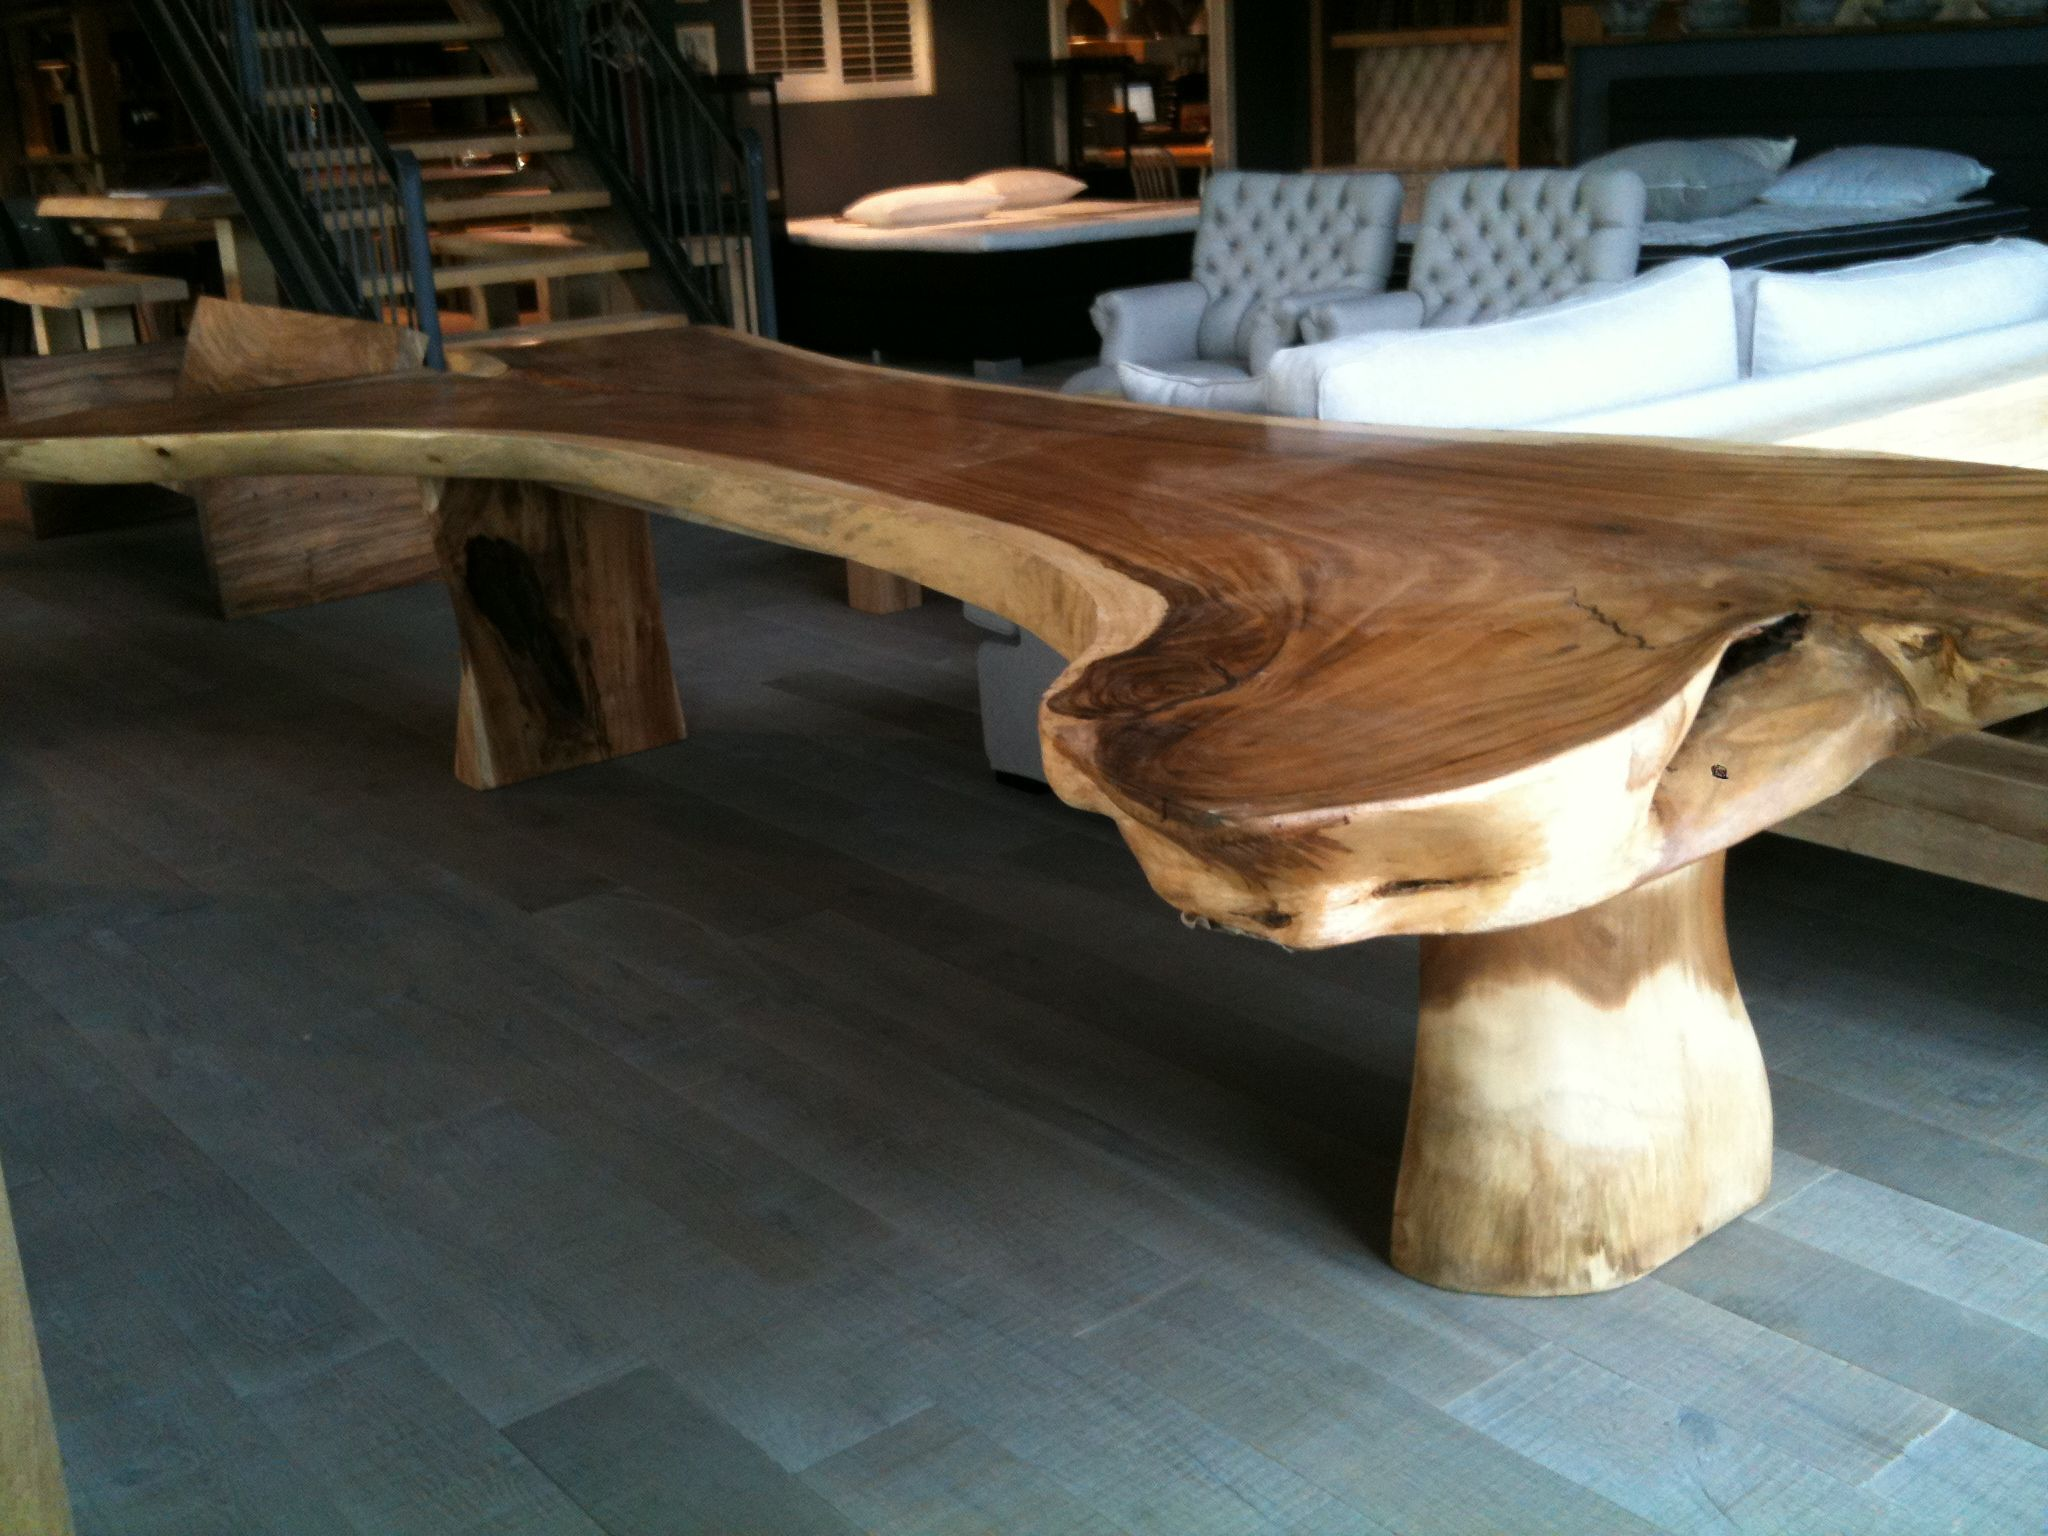 Dining table of suar tree trunk from Bali - amazing | wood ...